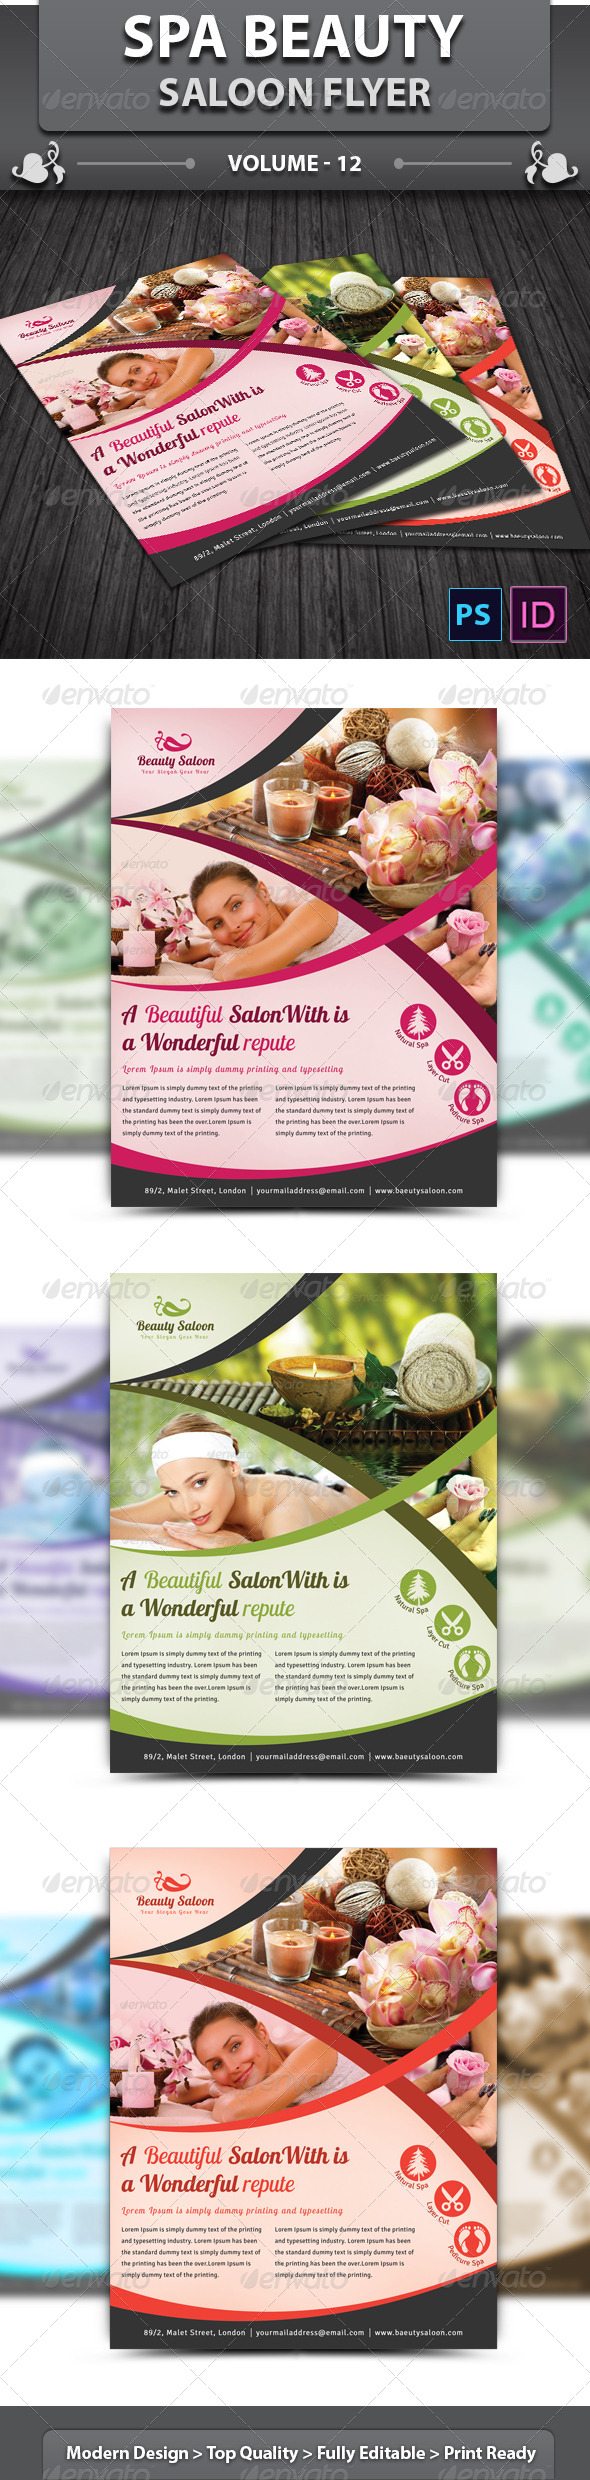 Spa & Beauty Saloon Flyer | Volume 12 - Corporate Flyers